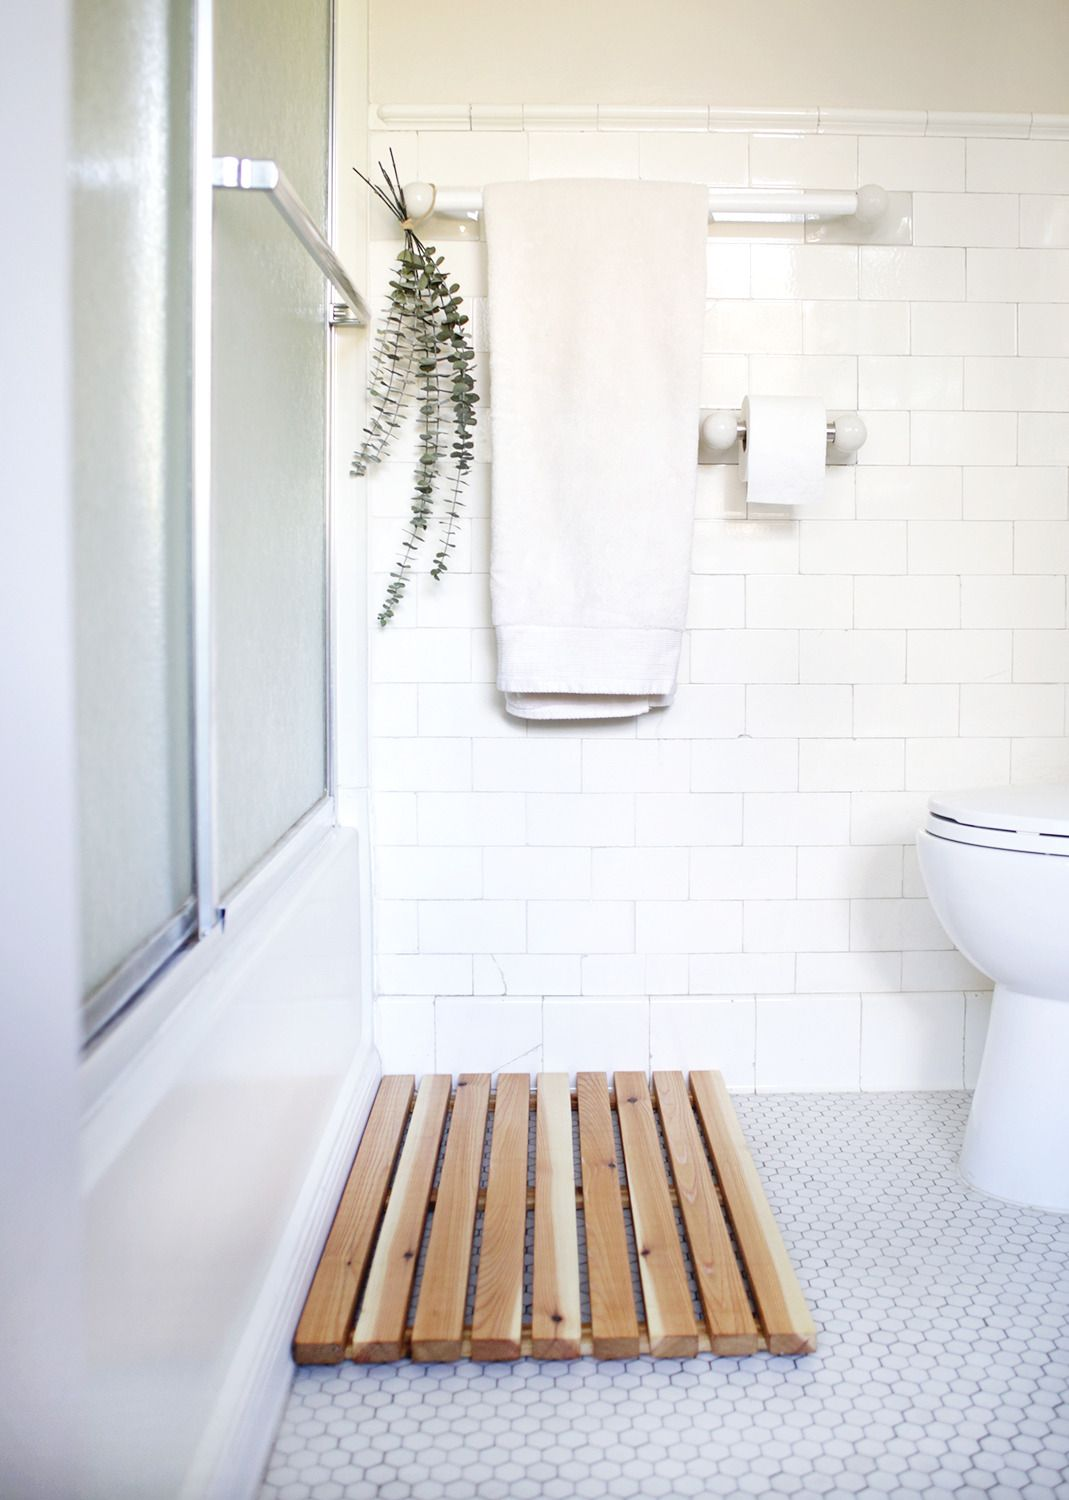 6 Spa-Like Bathroom Decorating Ideas That Will Leave You Relaxed ...